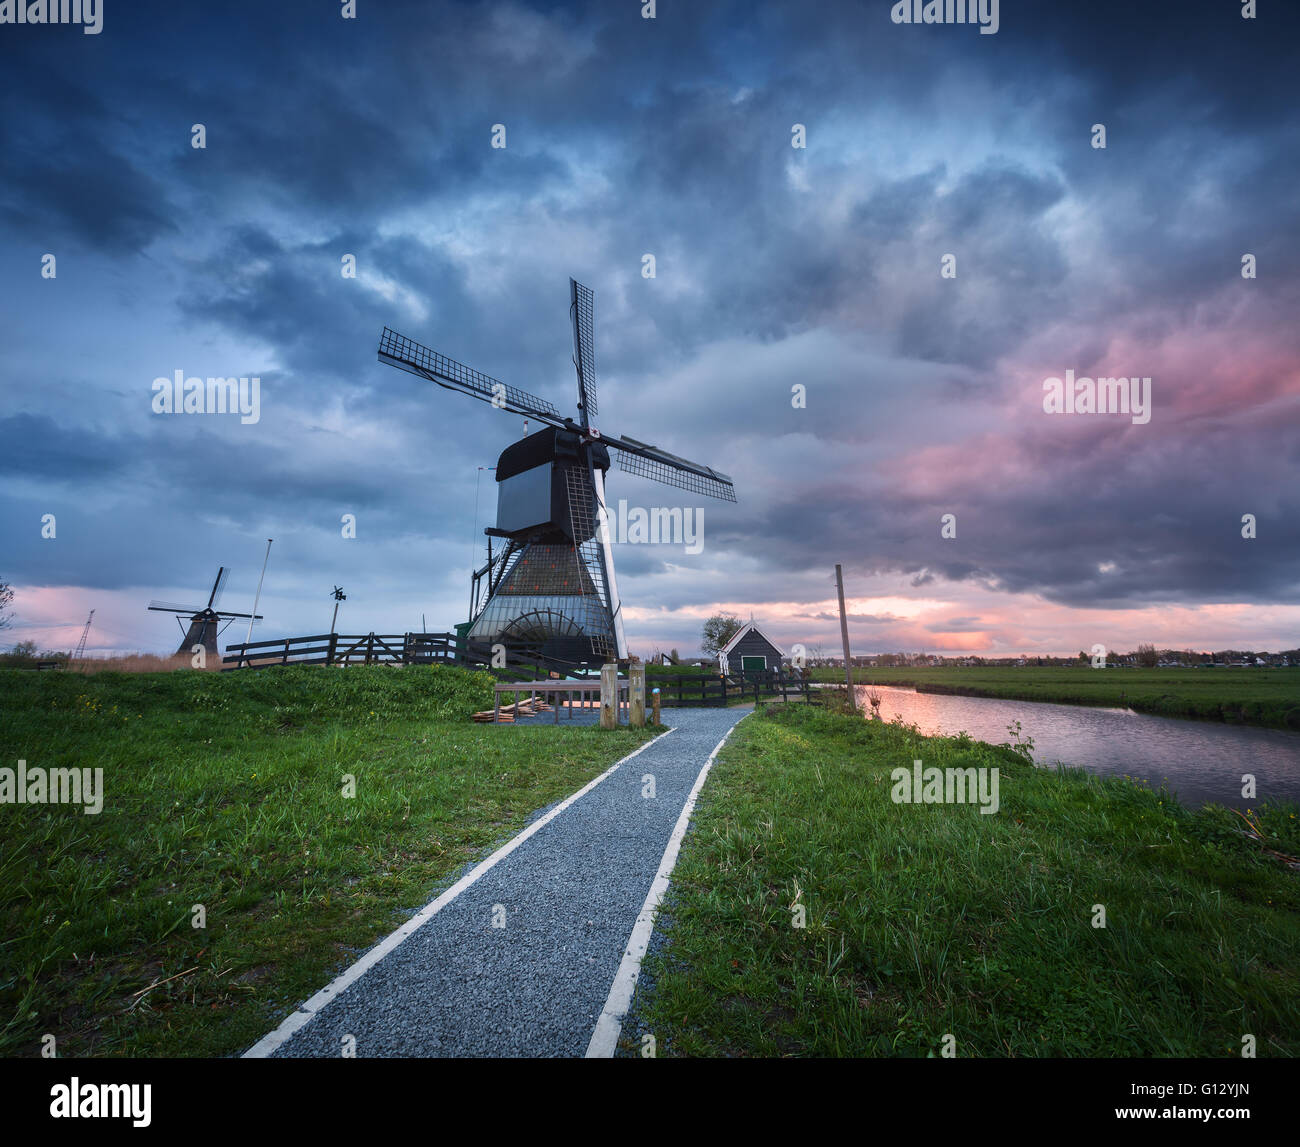 Beautiful landscape with traditional dutch windmills near the famous water canals with dramatic sky, colorful clouds Stock Photo